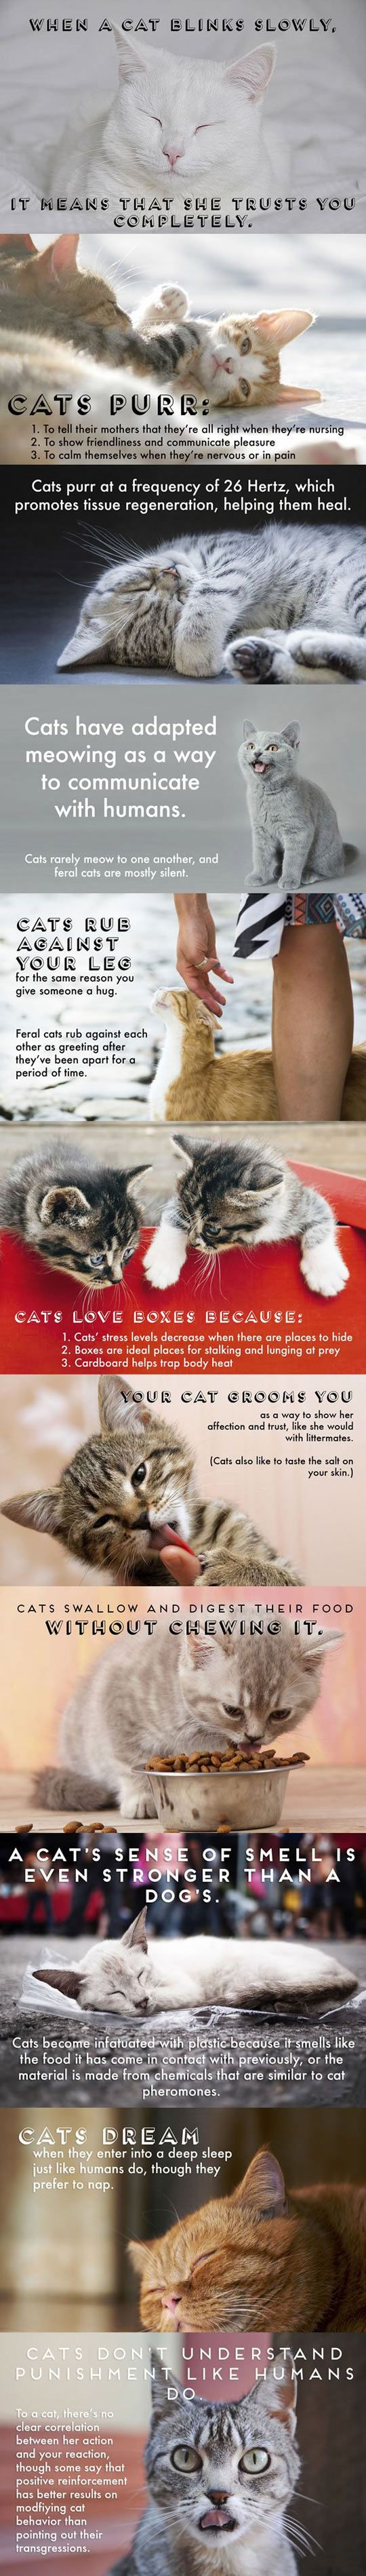 Something You Probably Didn't Know About Cats